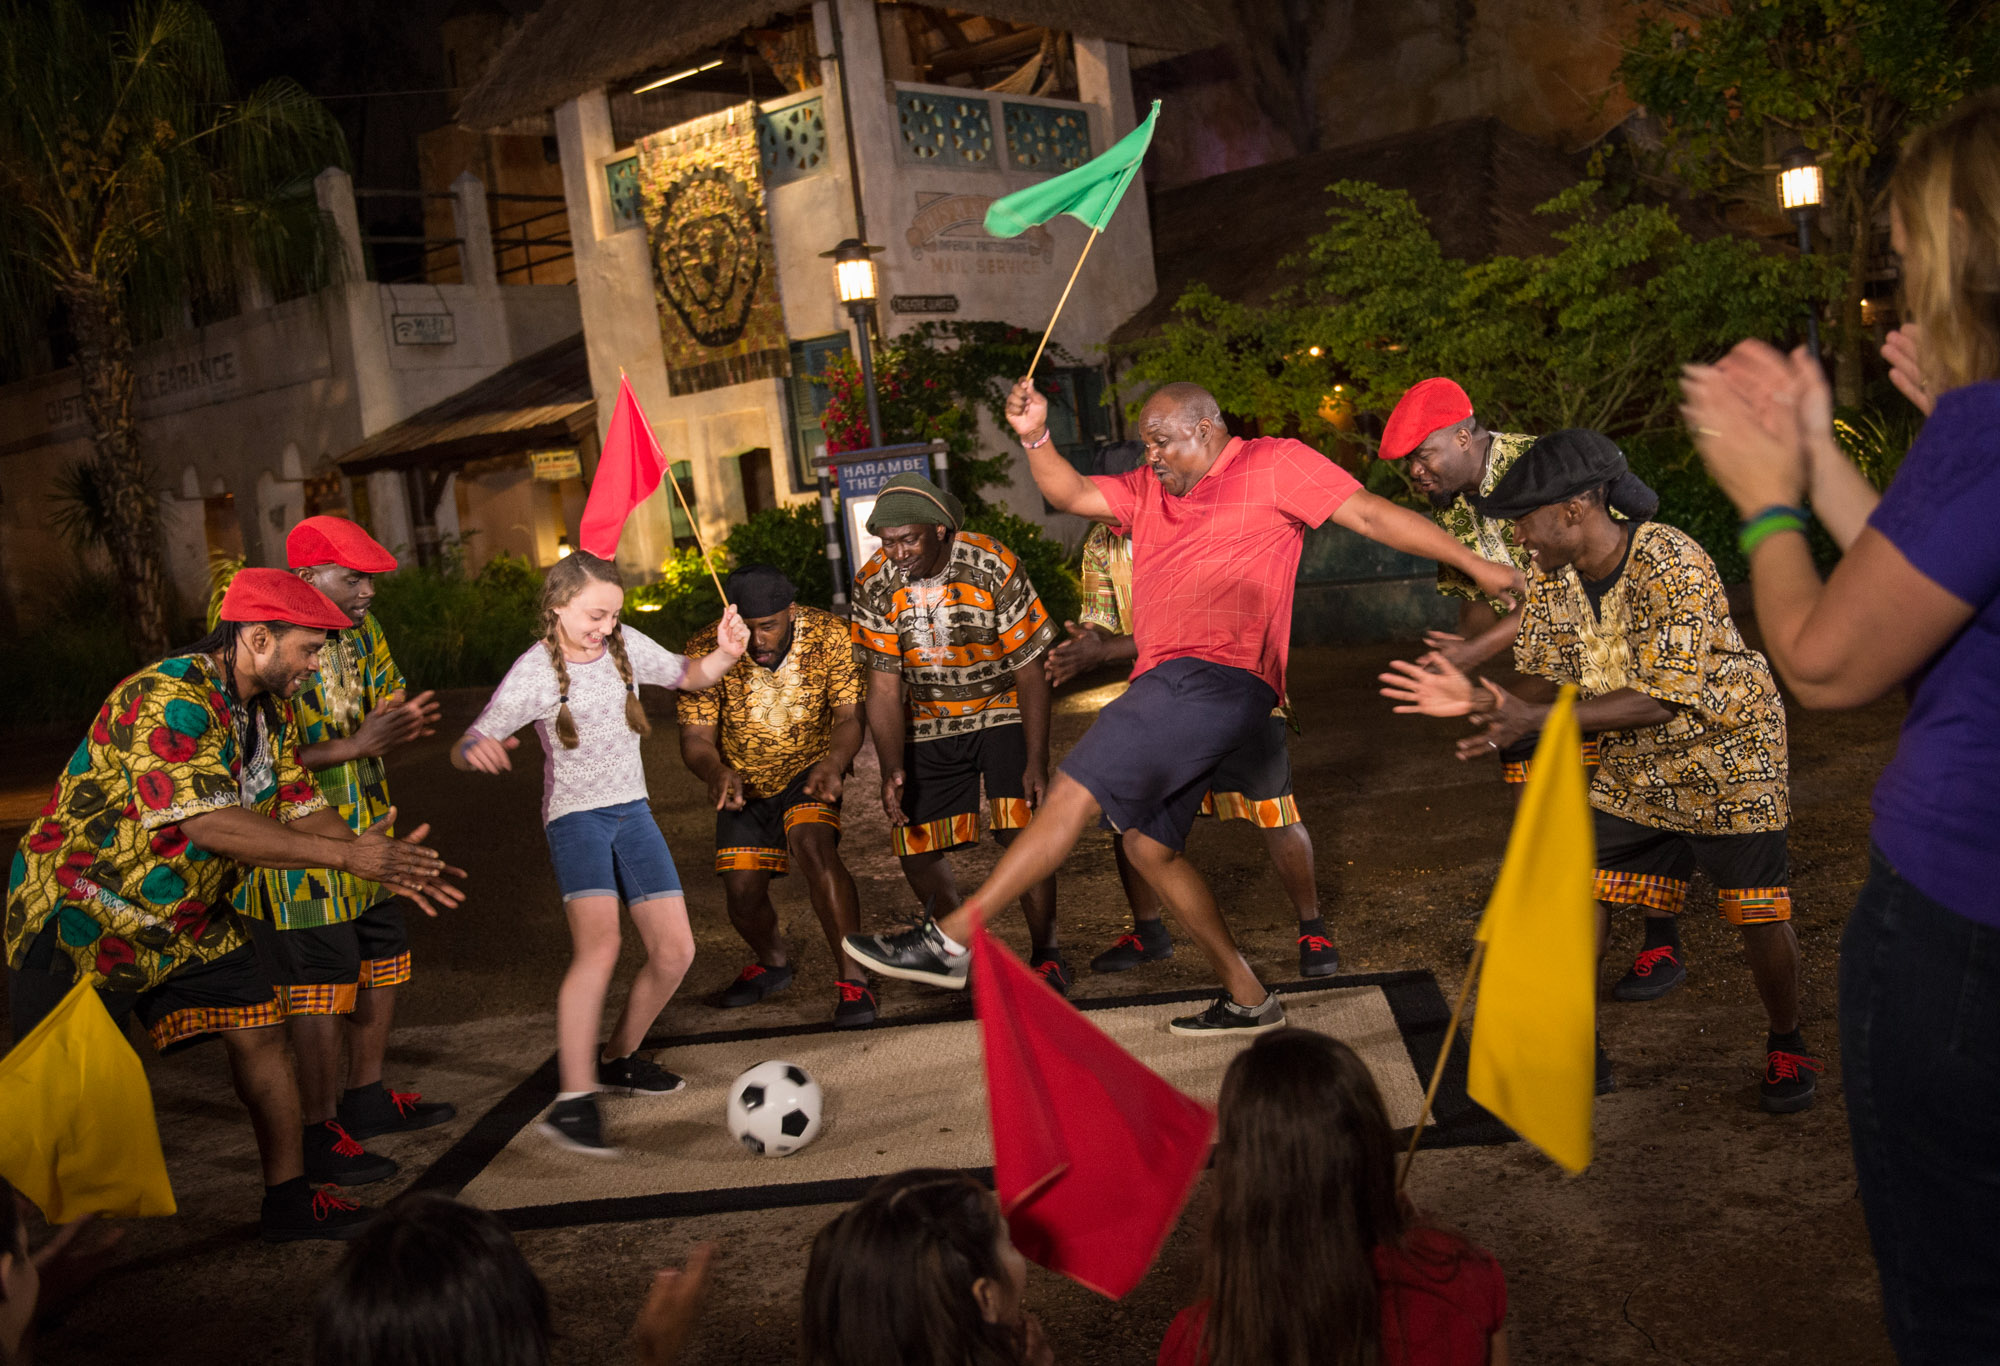 When the sun sets, the popular Village of Harambe at Disney's Animal Kingdom will become a hot spot with the new Harambe Wildlife Parti. Here, Òparty animalsÓ can dance alongside a variety of entertainers and local street musicians, and enjoy the lively rhythms of African music. Guests can also partake in exotic foods and libations, and explore the diverse wares of village artisans and merchants in the vibrant marketplace. (David Roark, photographer)